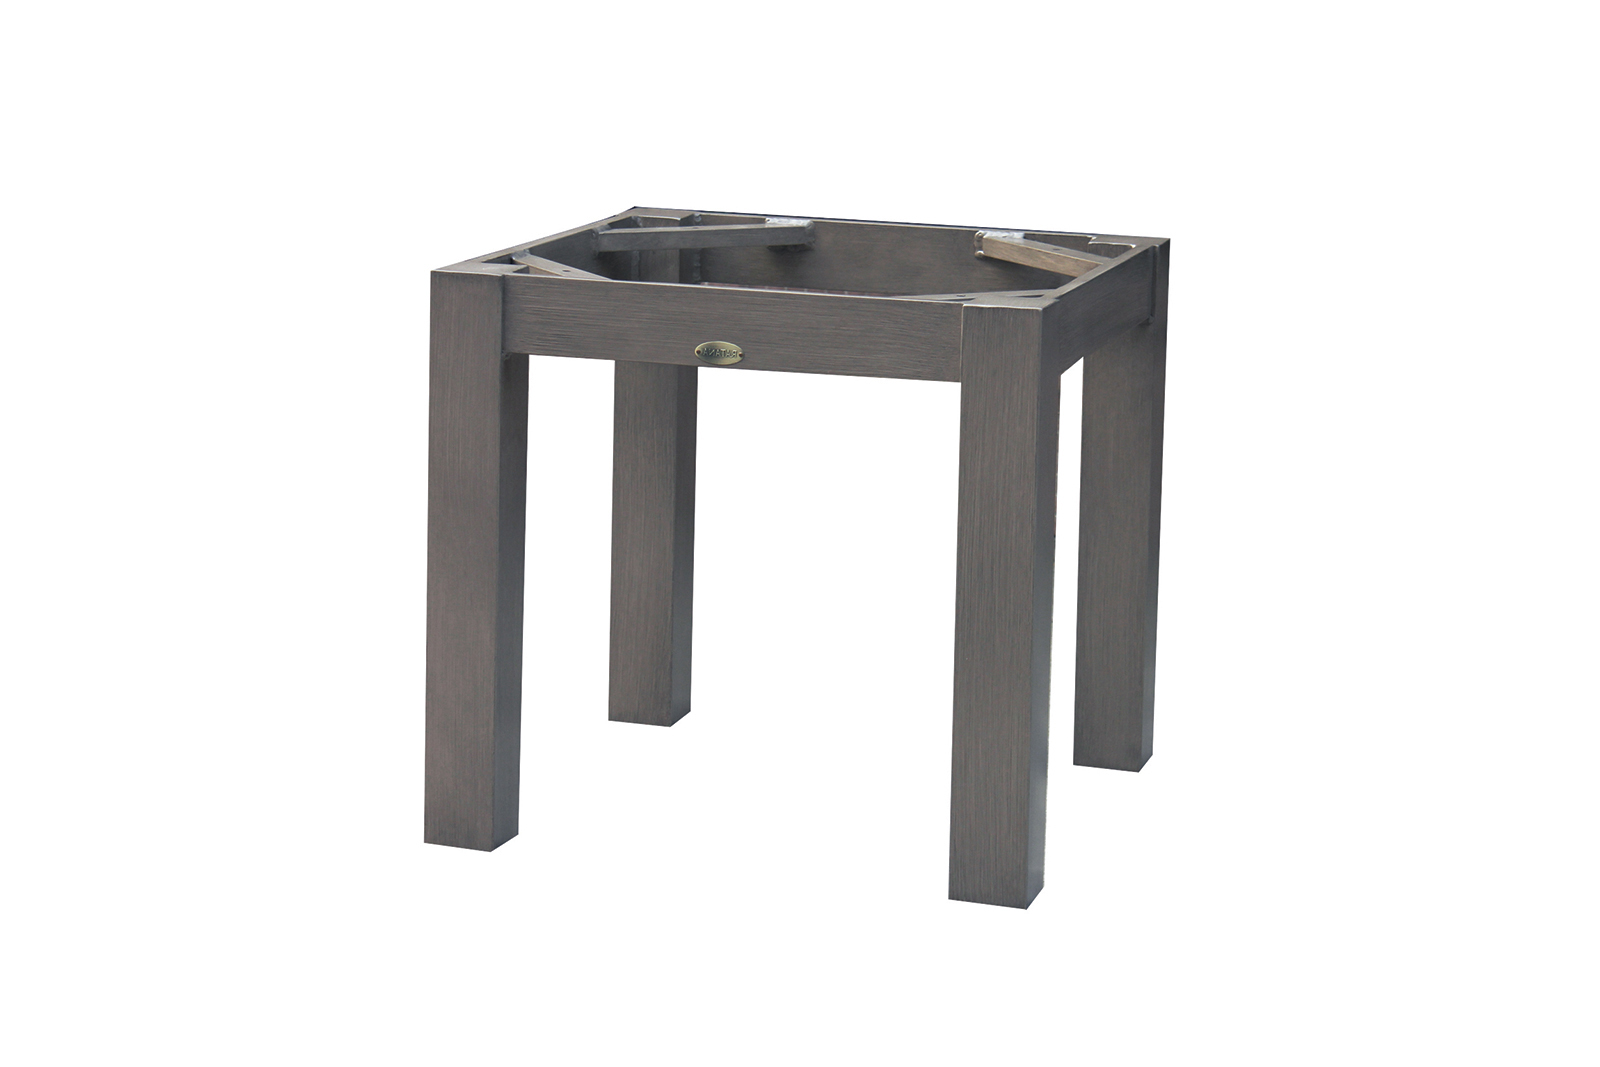 montreal end table base square top ratana tables cylindrical bedside rectangular metal side ethan allen furniture made usa ashley couch warranty antique set steel coffee designs